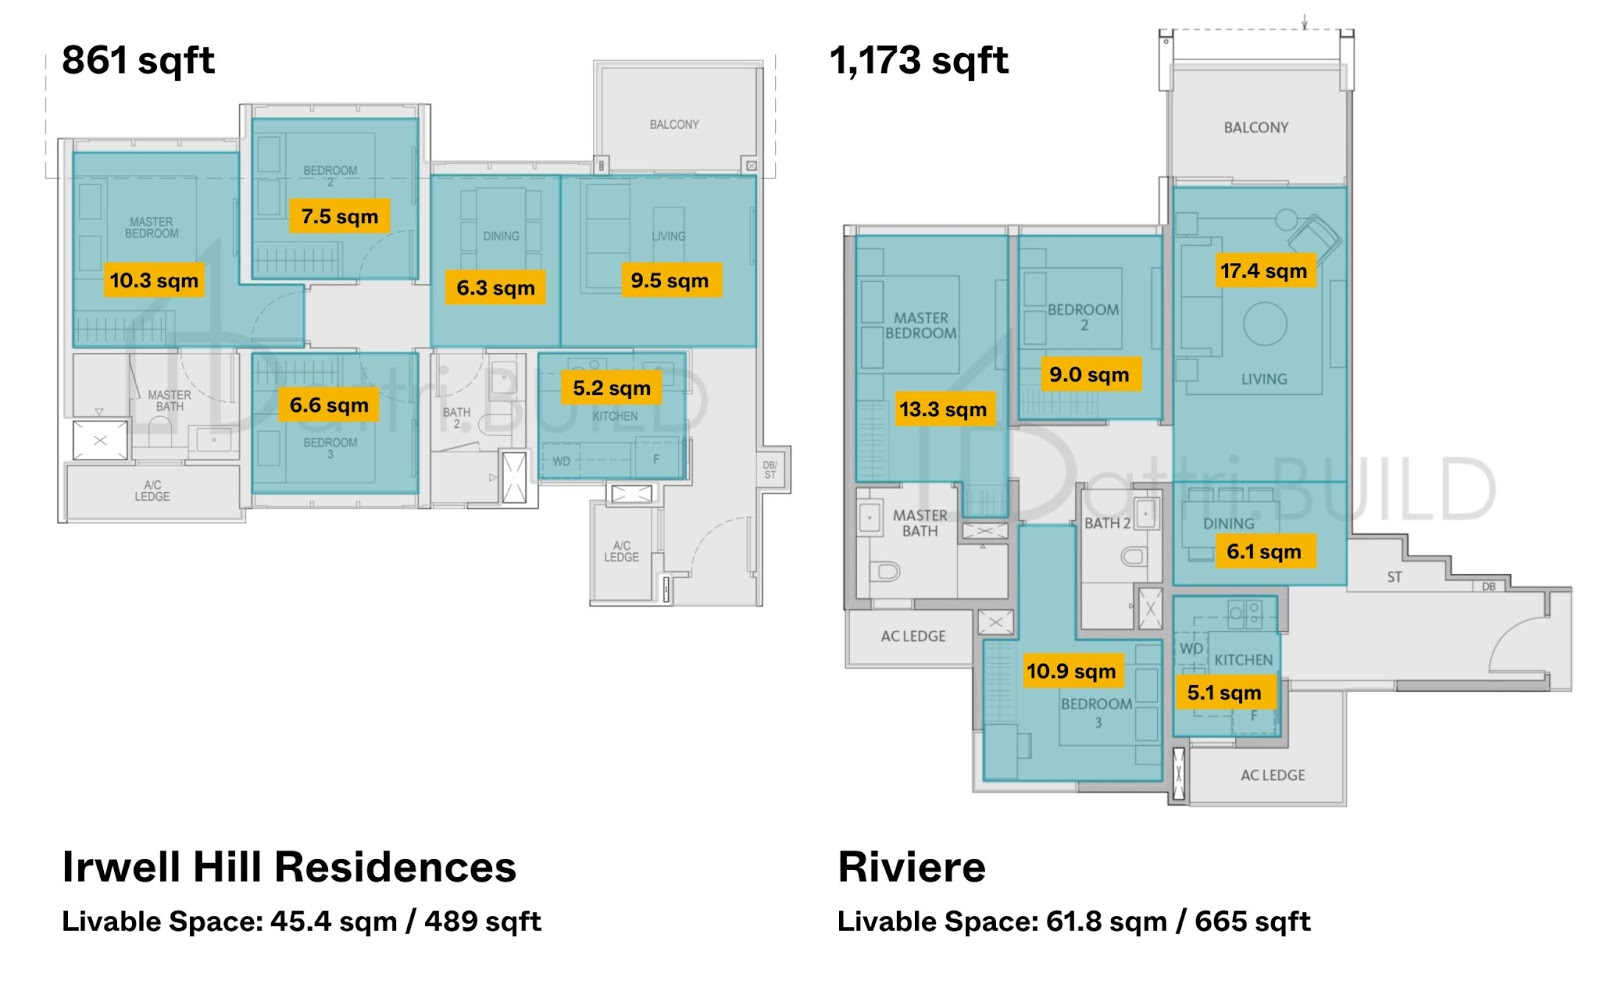 irwell hill residences vs riviere